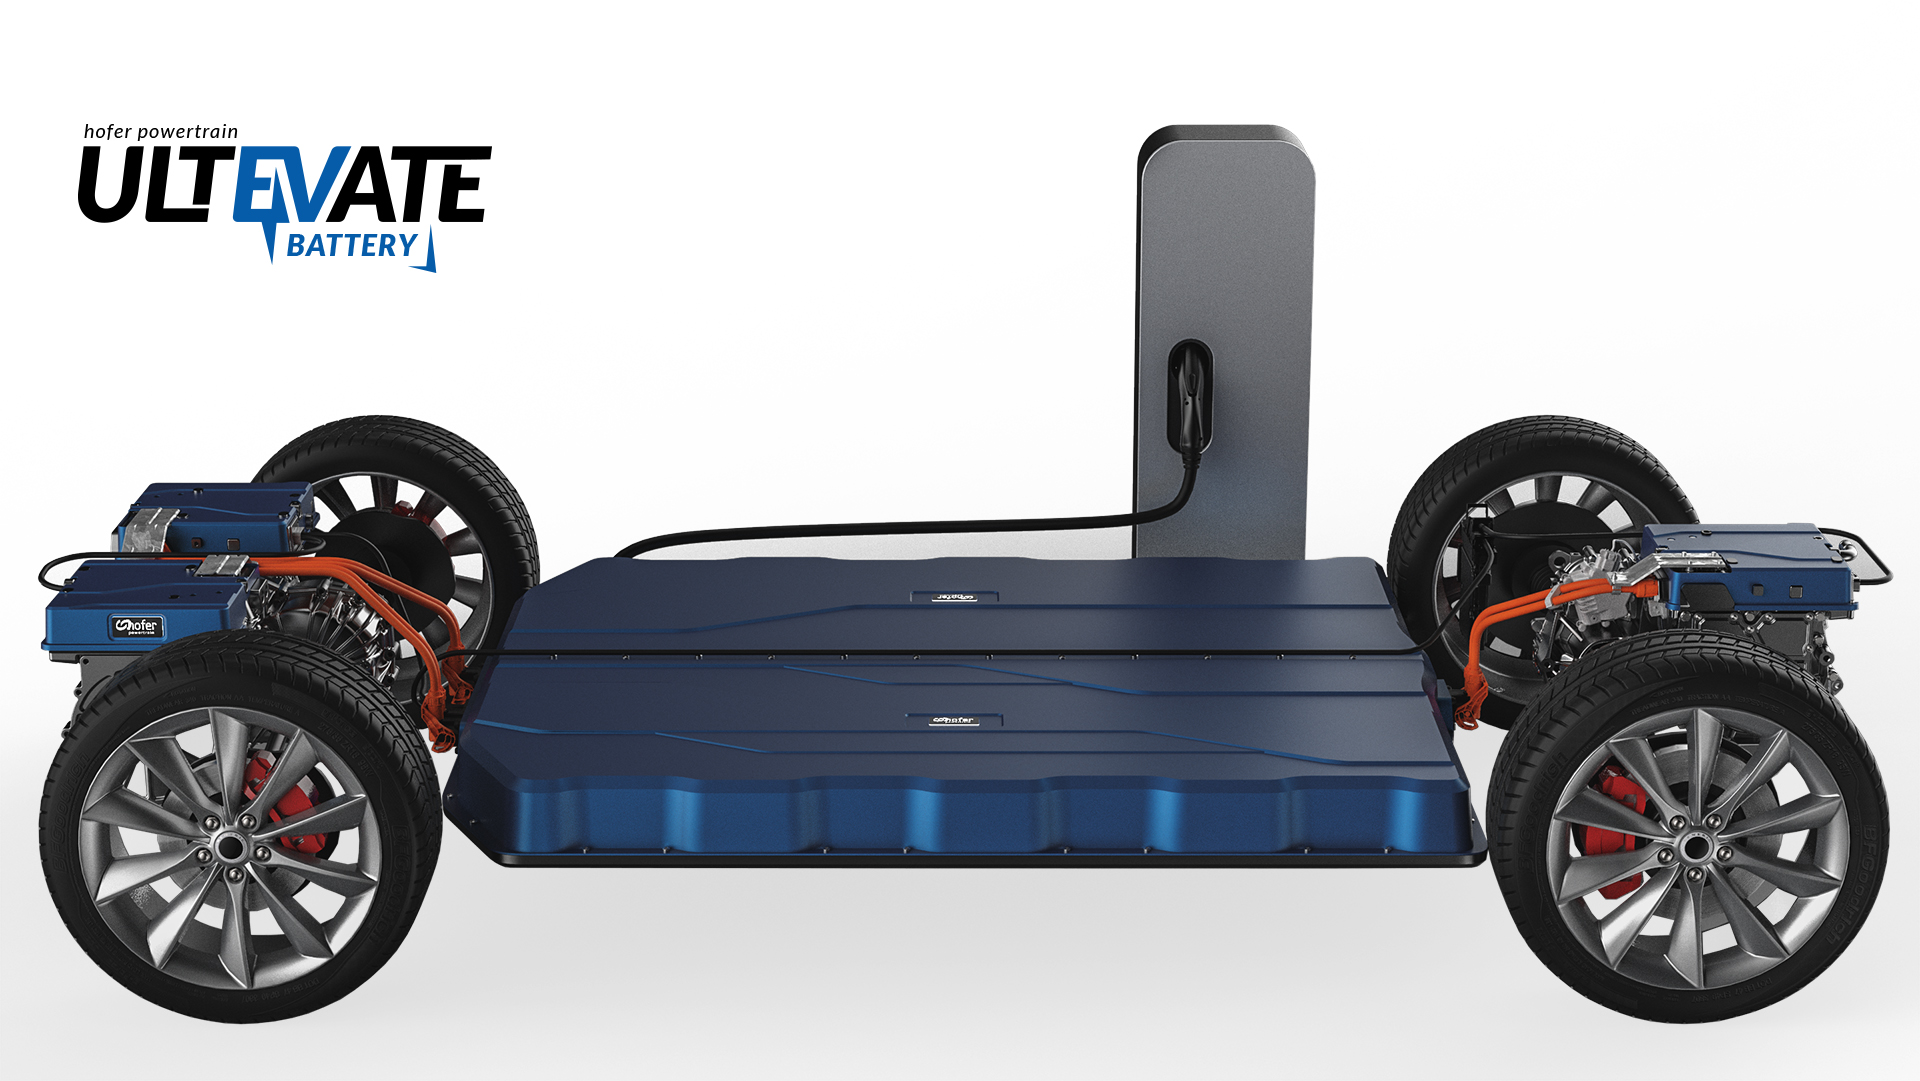 On the future of battery solutions within the powertrain